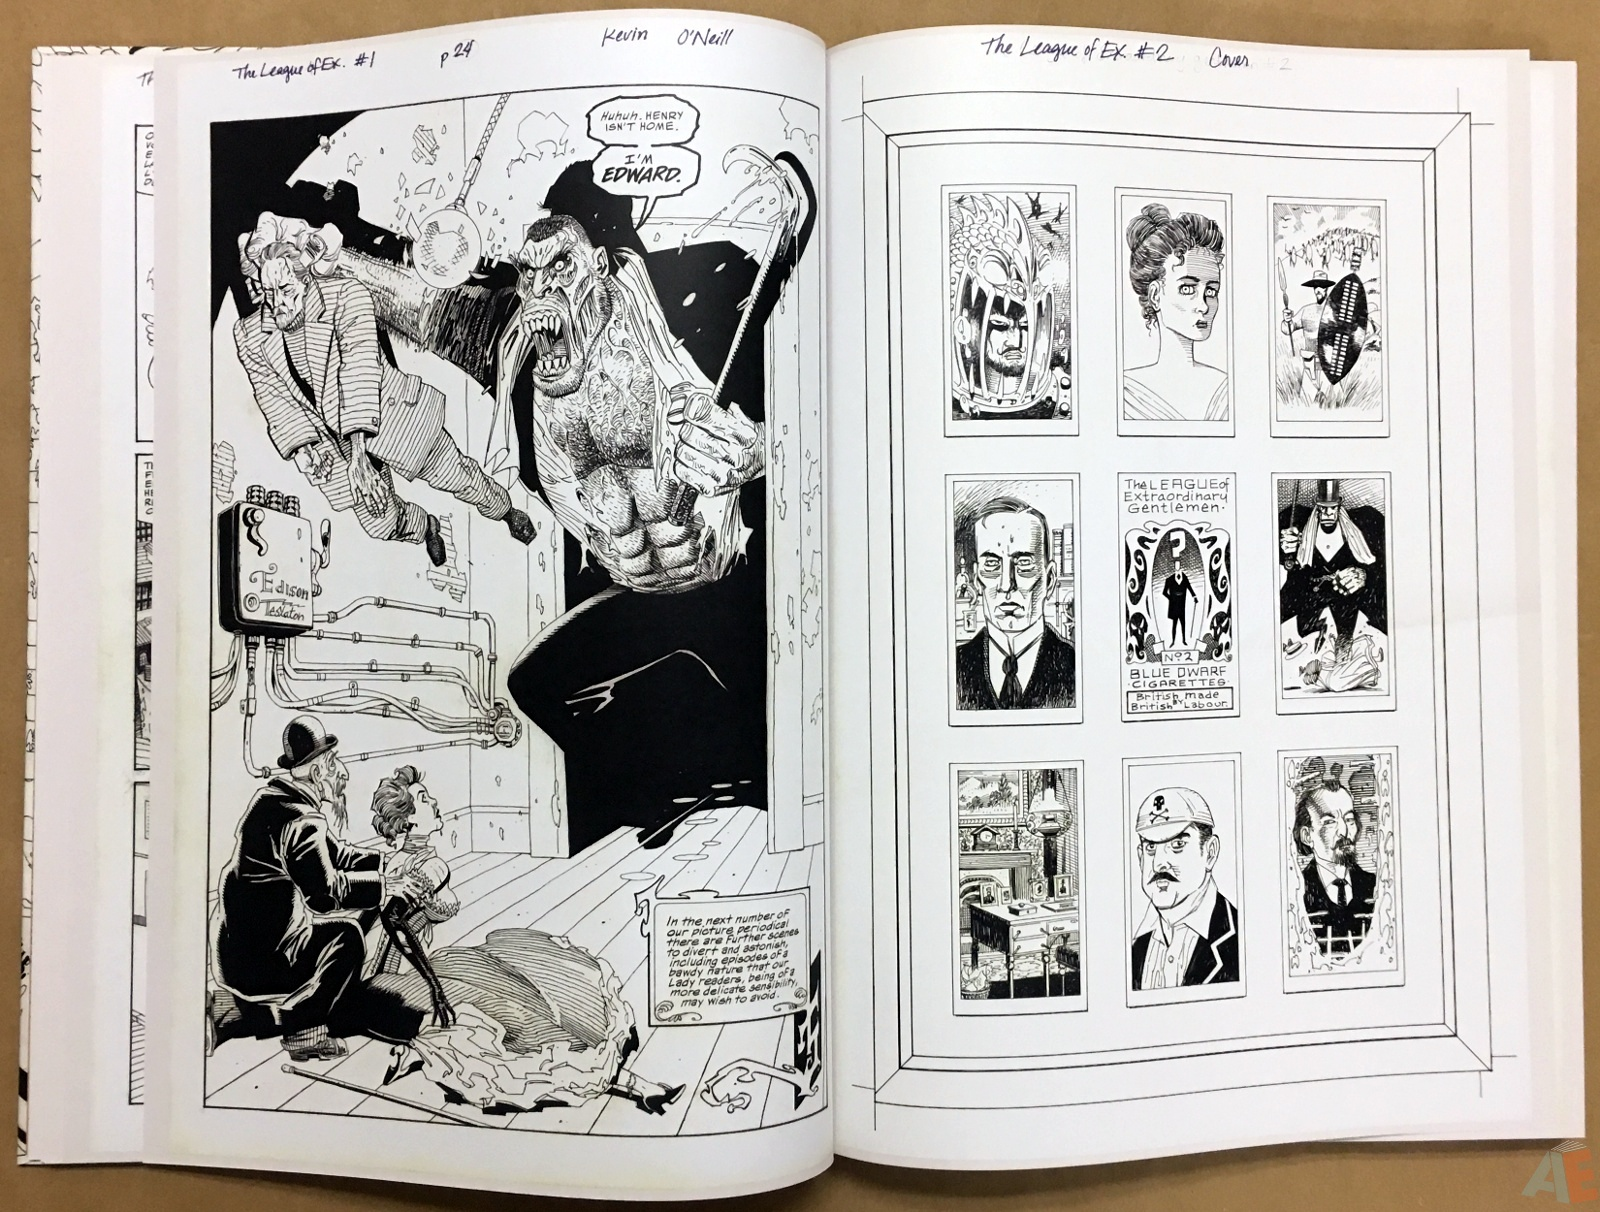 The League Of Extraordinary Gentlemen: Kevin O'Neill Gallery Edition 14